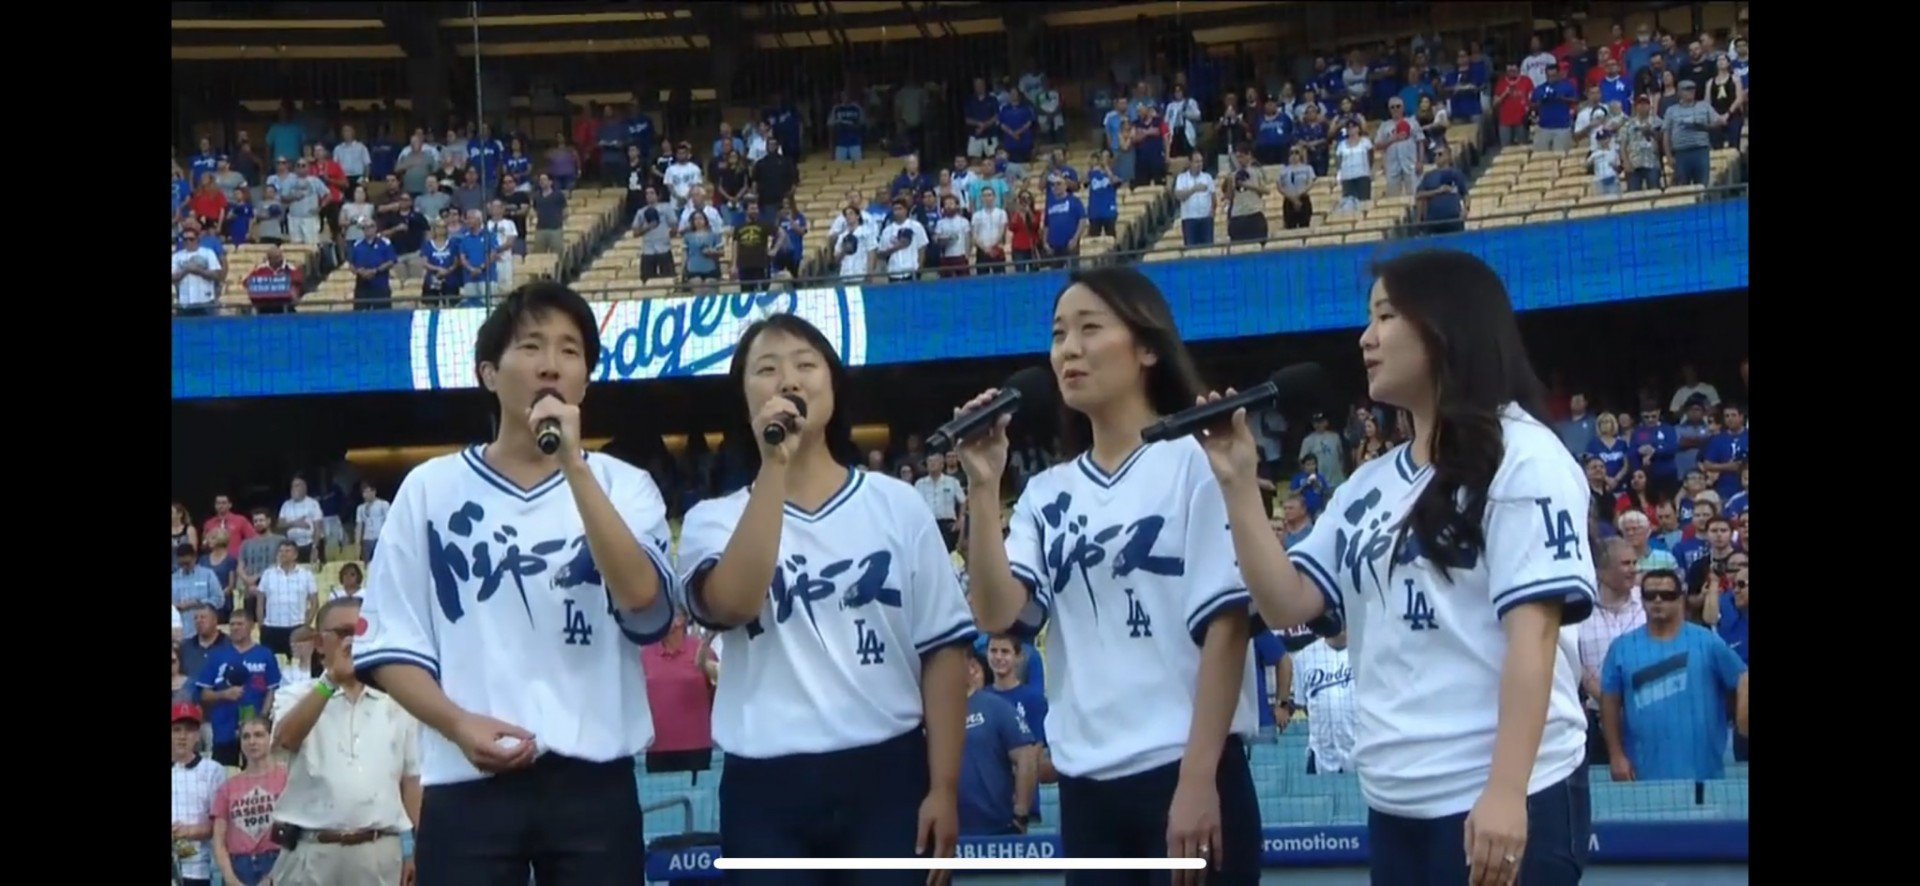 Postdoctoral scientist Michael Murata, PhD, left, sings the Japanese national anthem as part of the a cappella group Grateful Four to open a recent Dodgers game. Photo courtesy of Michael Murata, PhD.